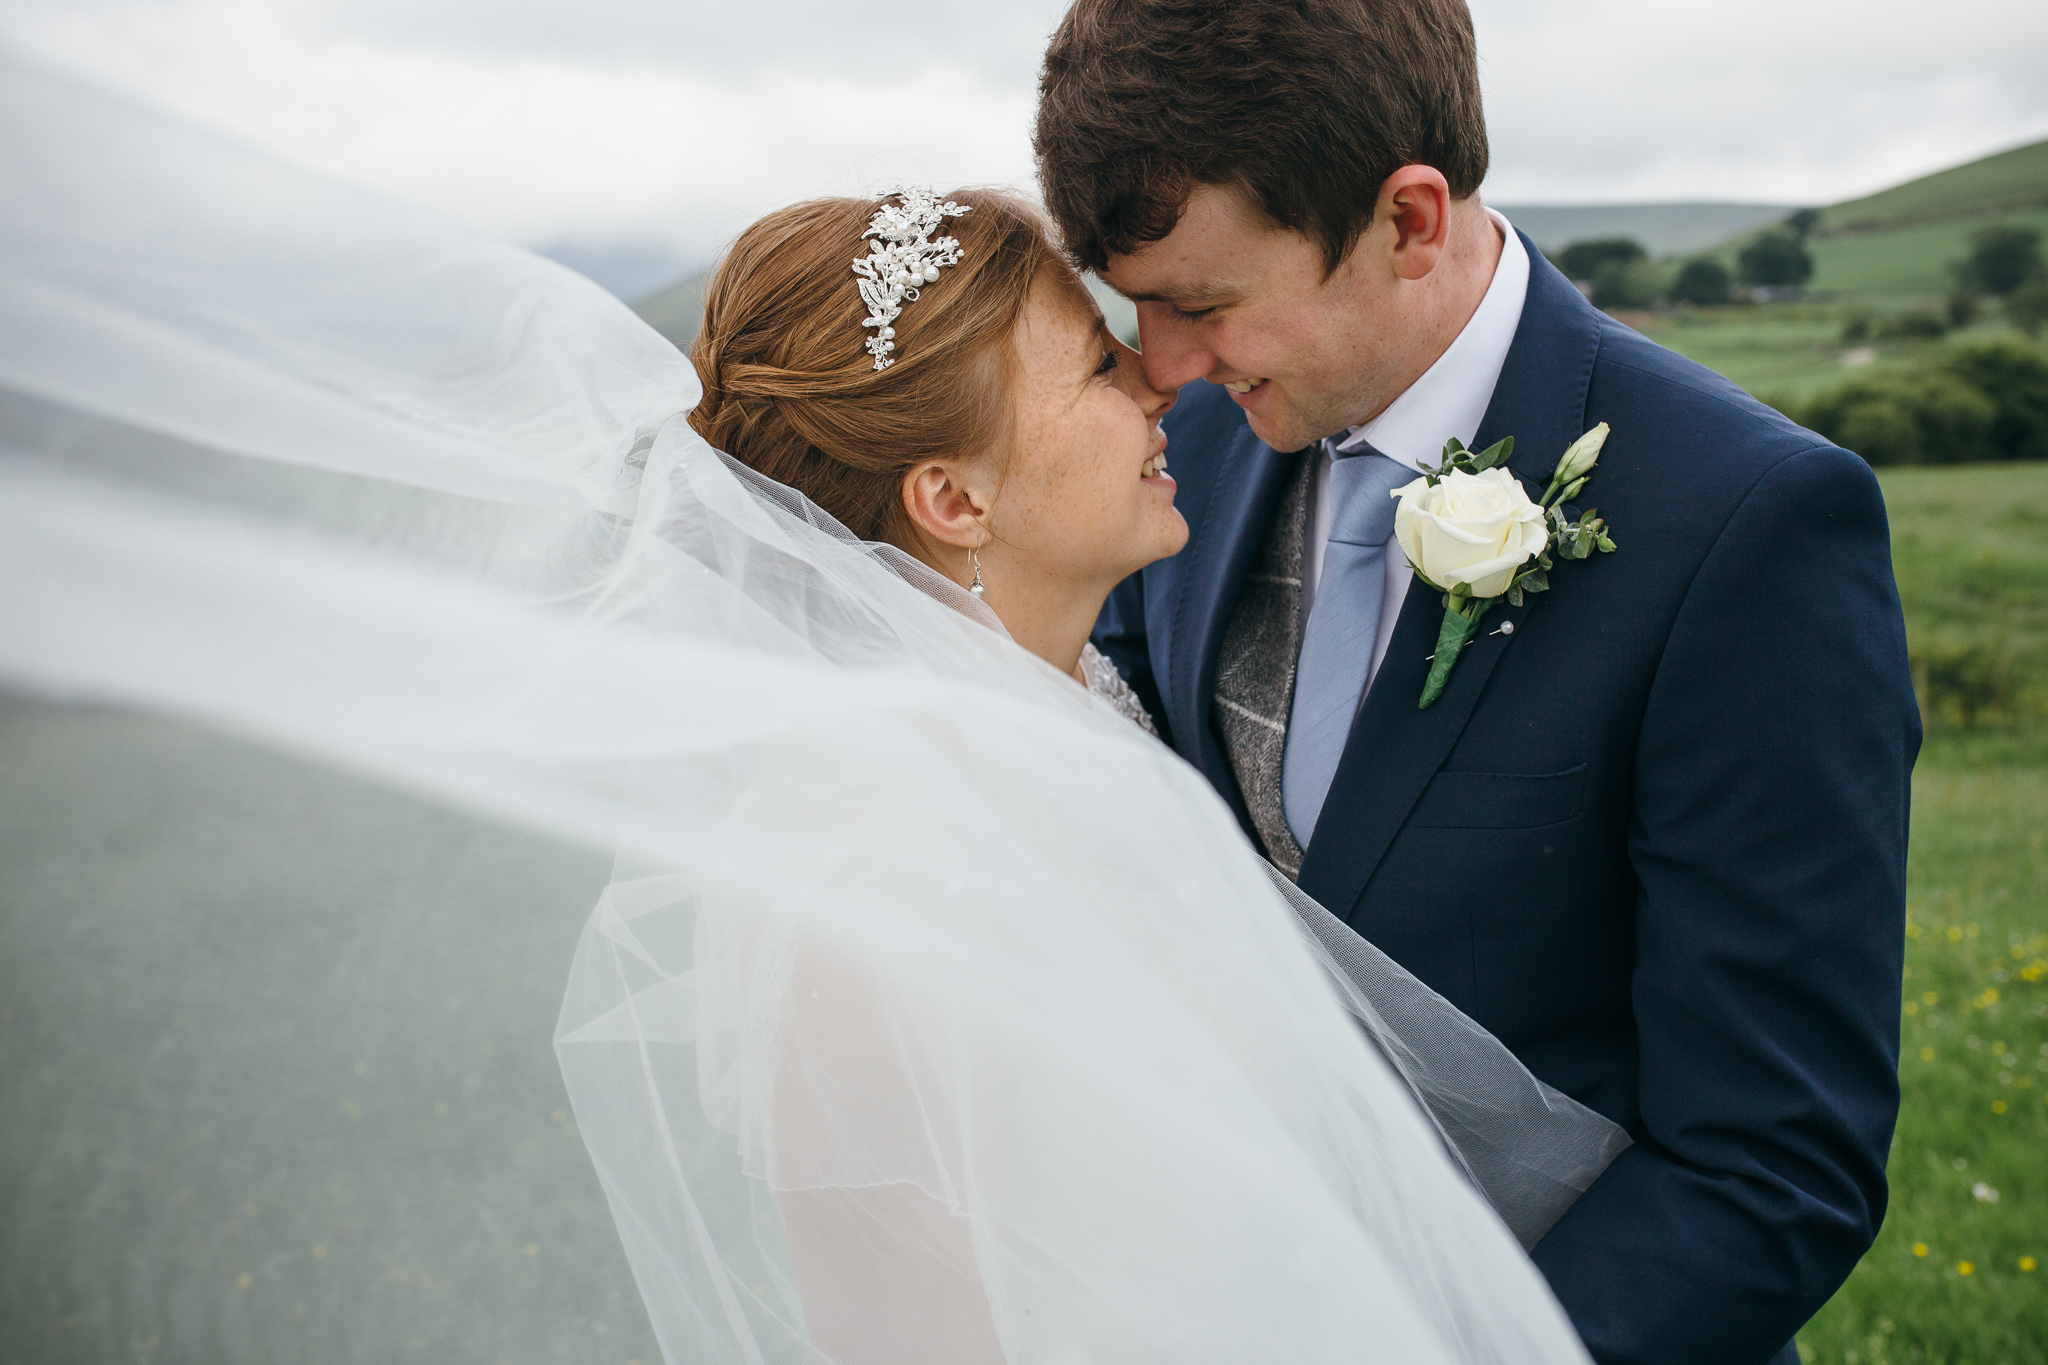 Beth & Phil | Chipping, England.